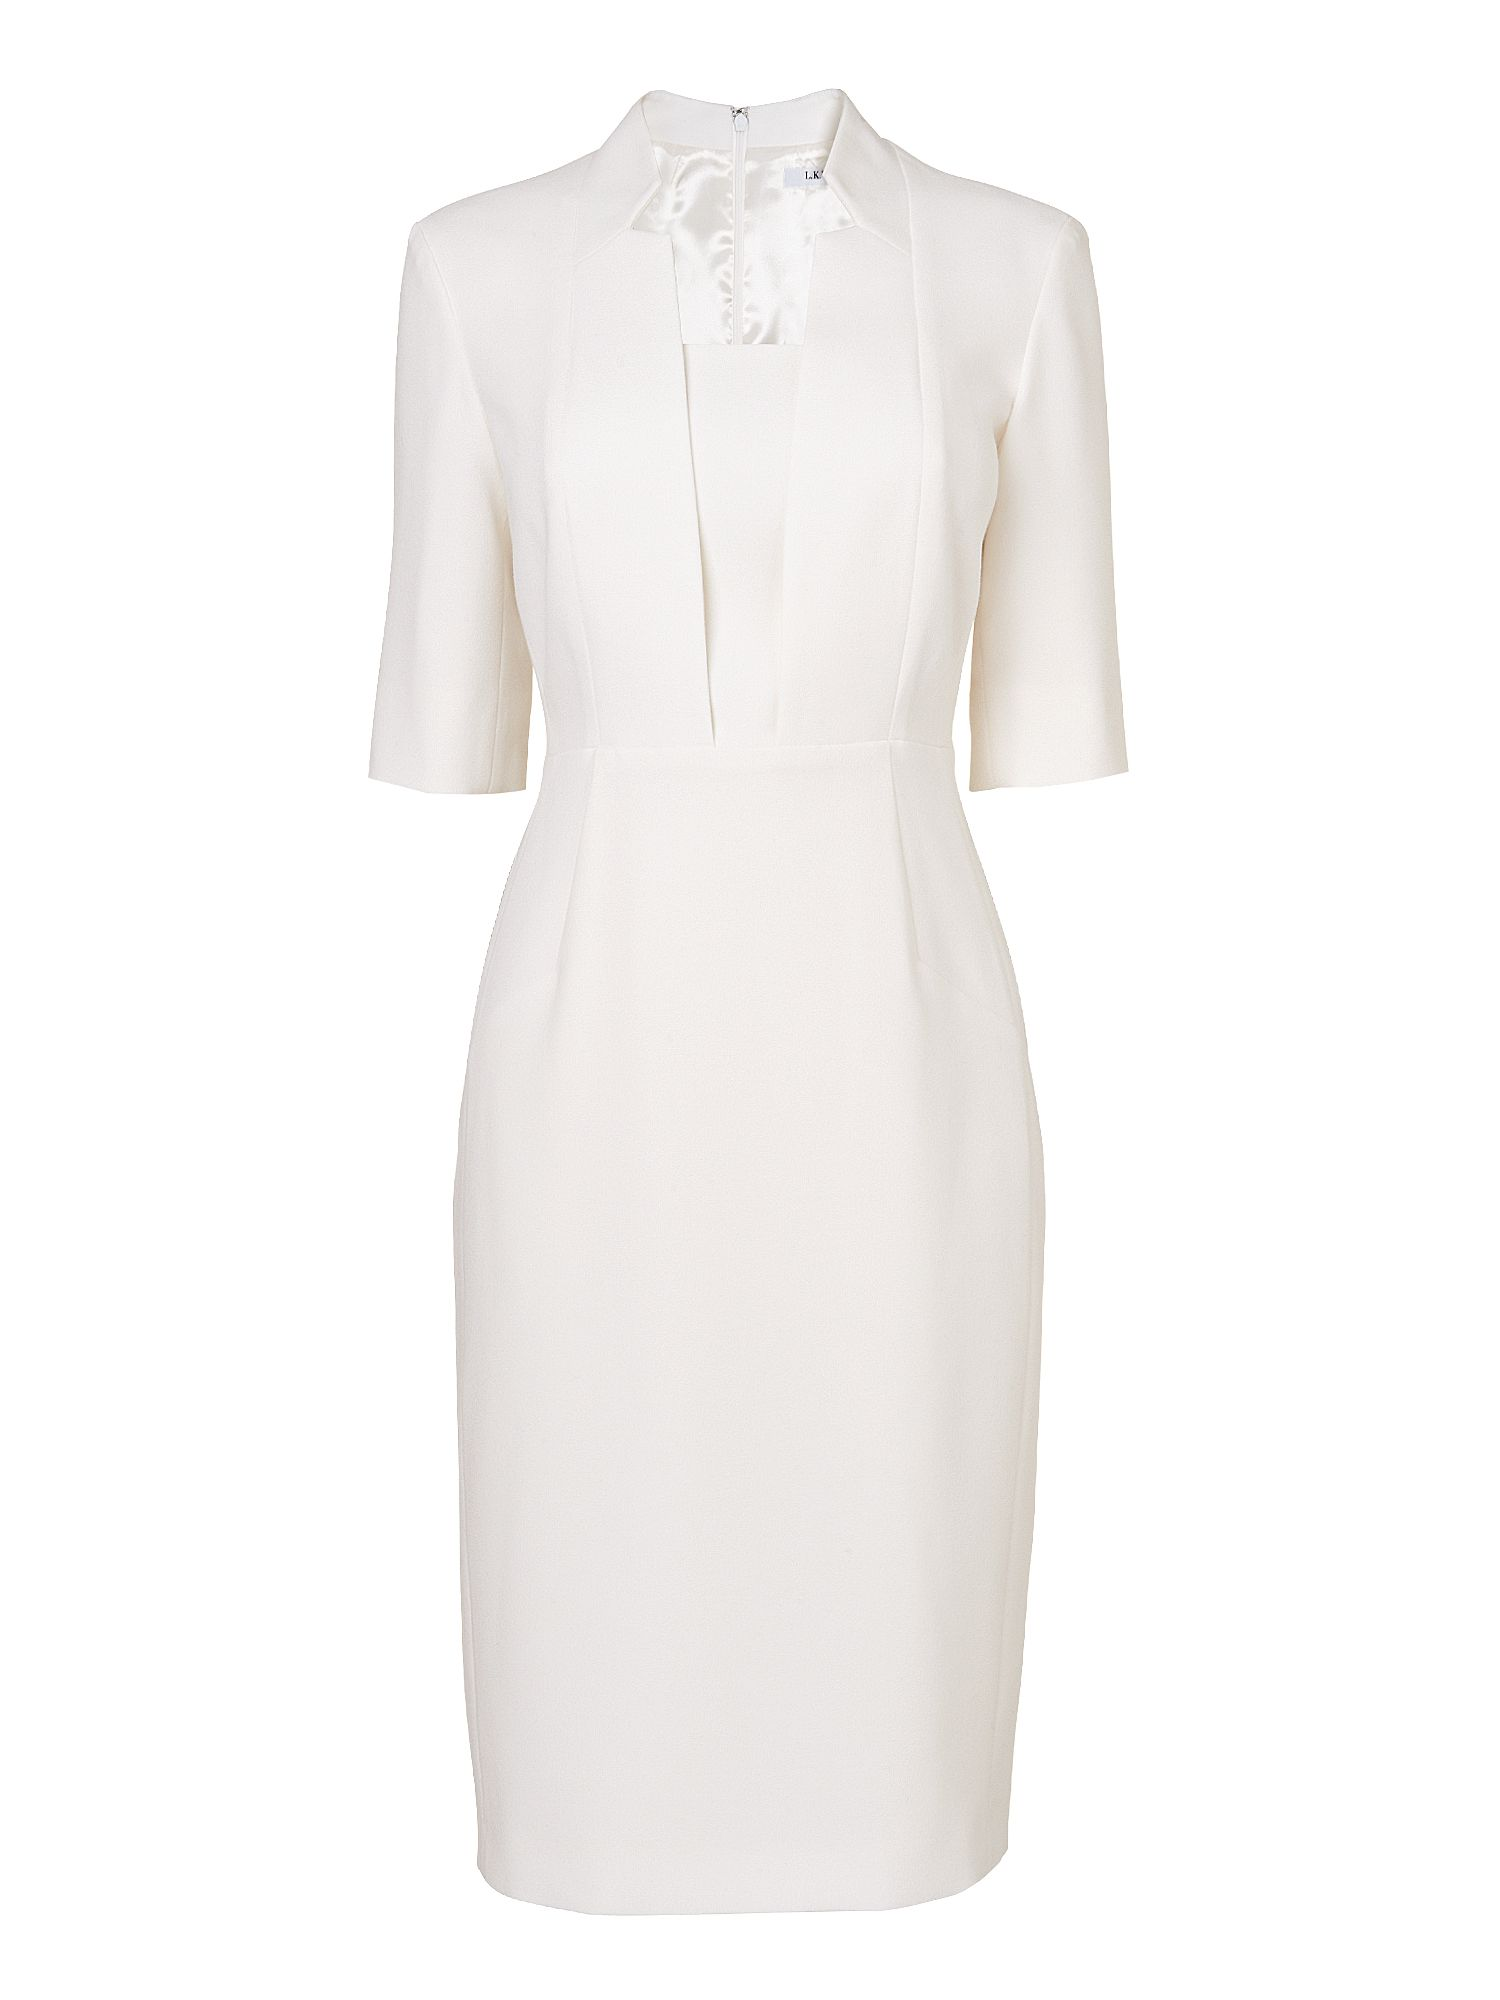 L.K. Bennett Detroit fitted dress, Cream